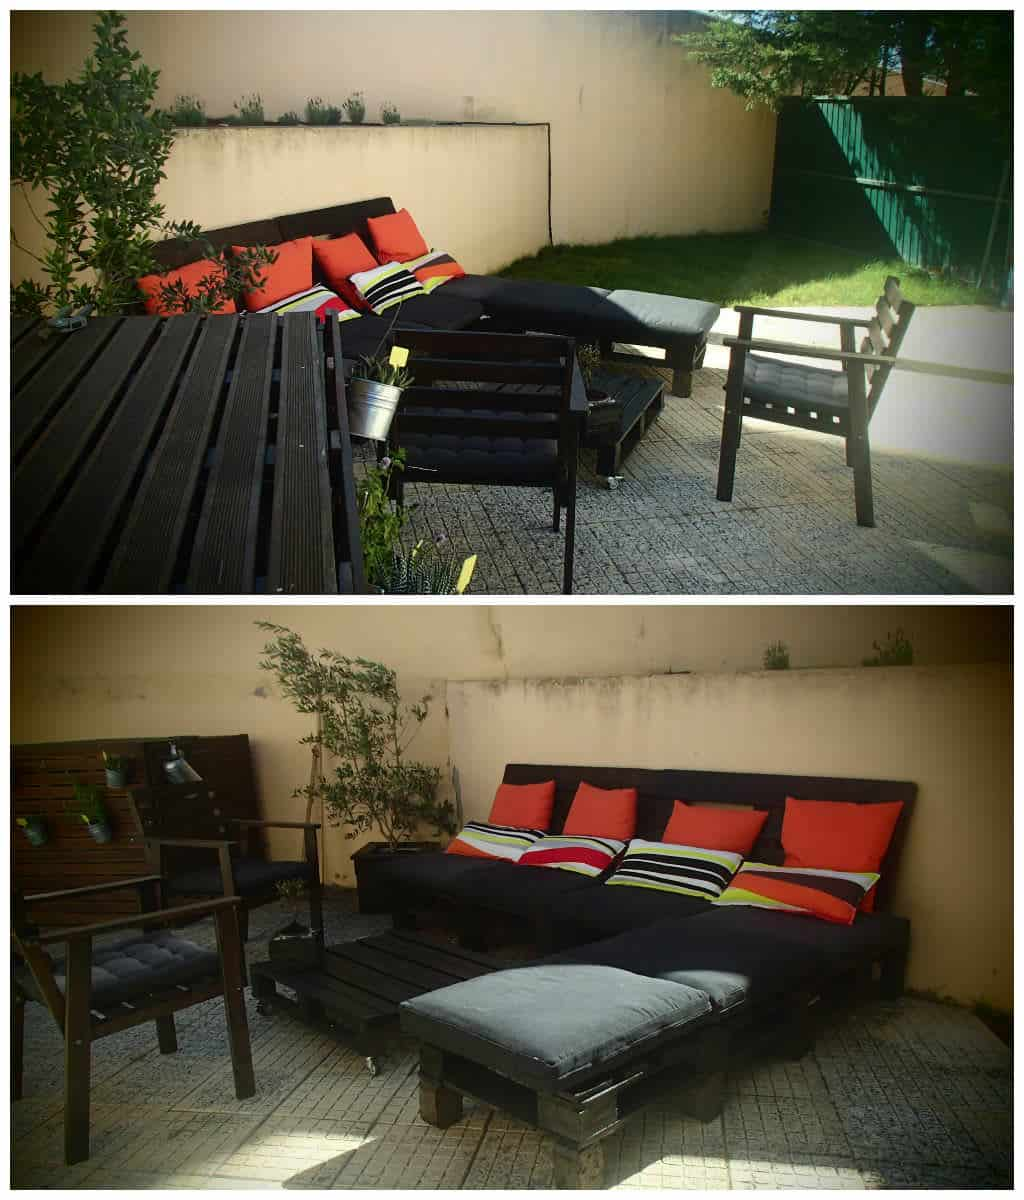 Diy outdoor patio furniture from pallets 99 pallets - Diy Outdoor Patio Furniture From Pallets 99 Pallets 55